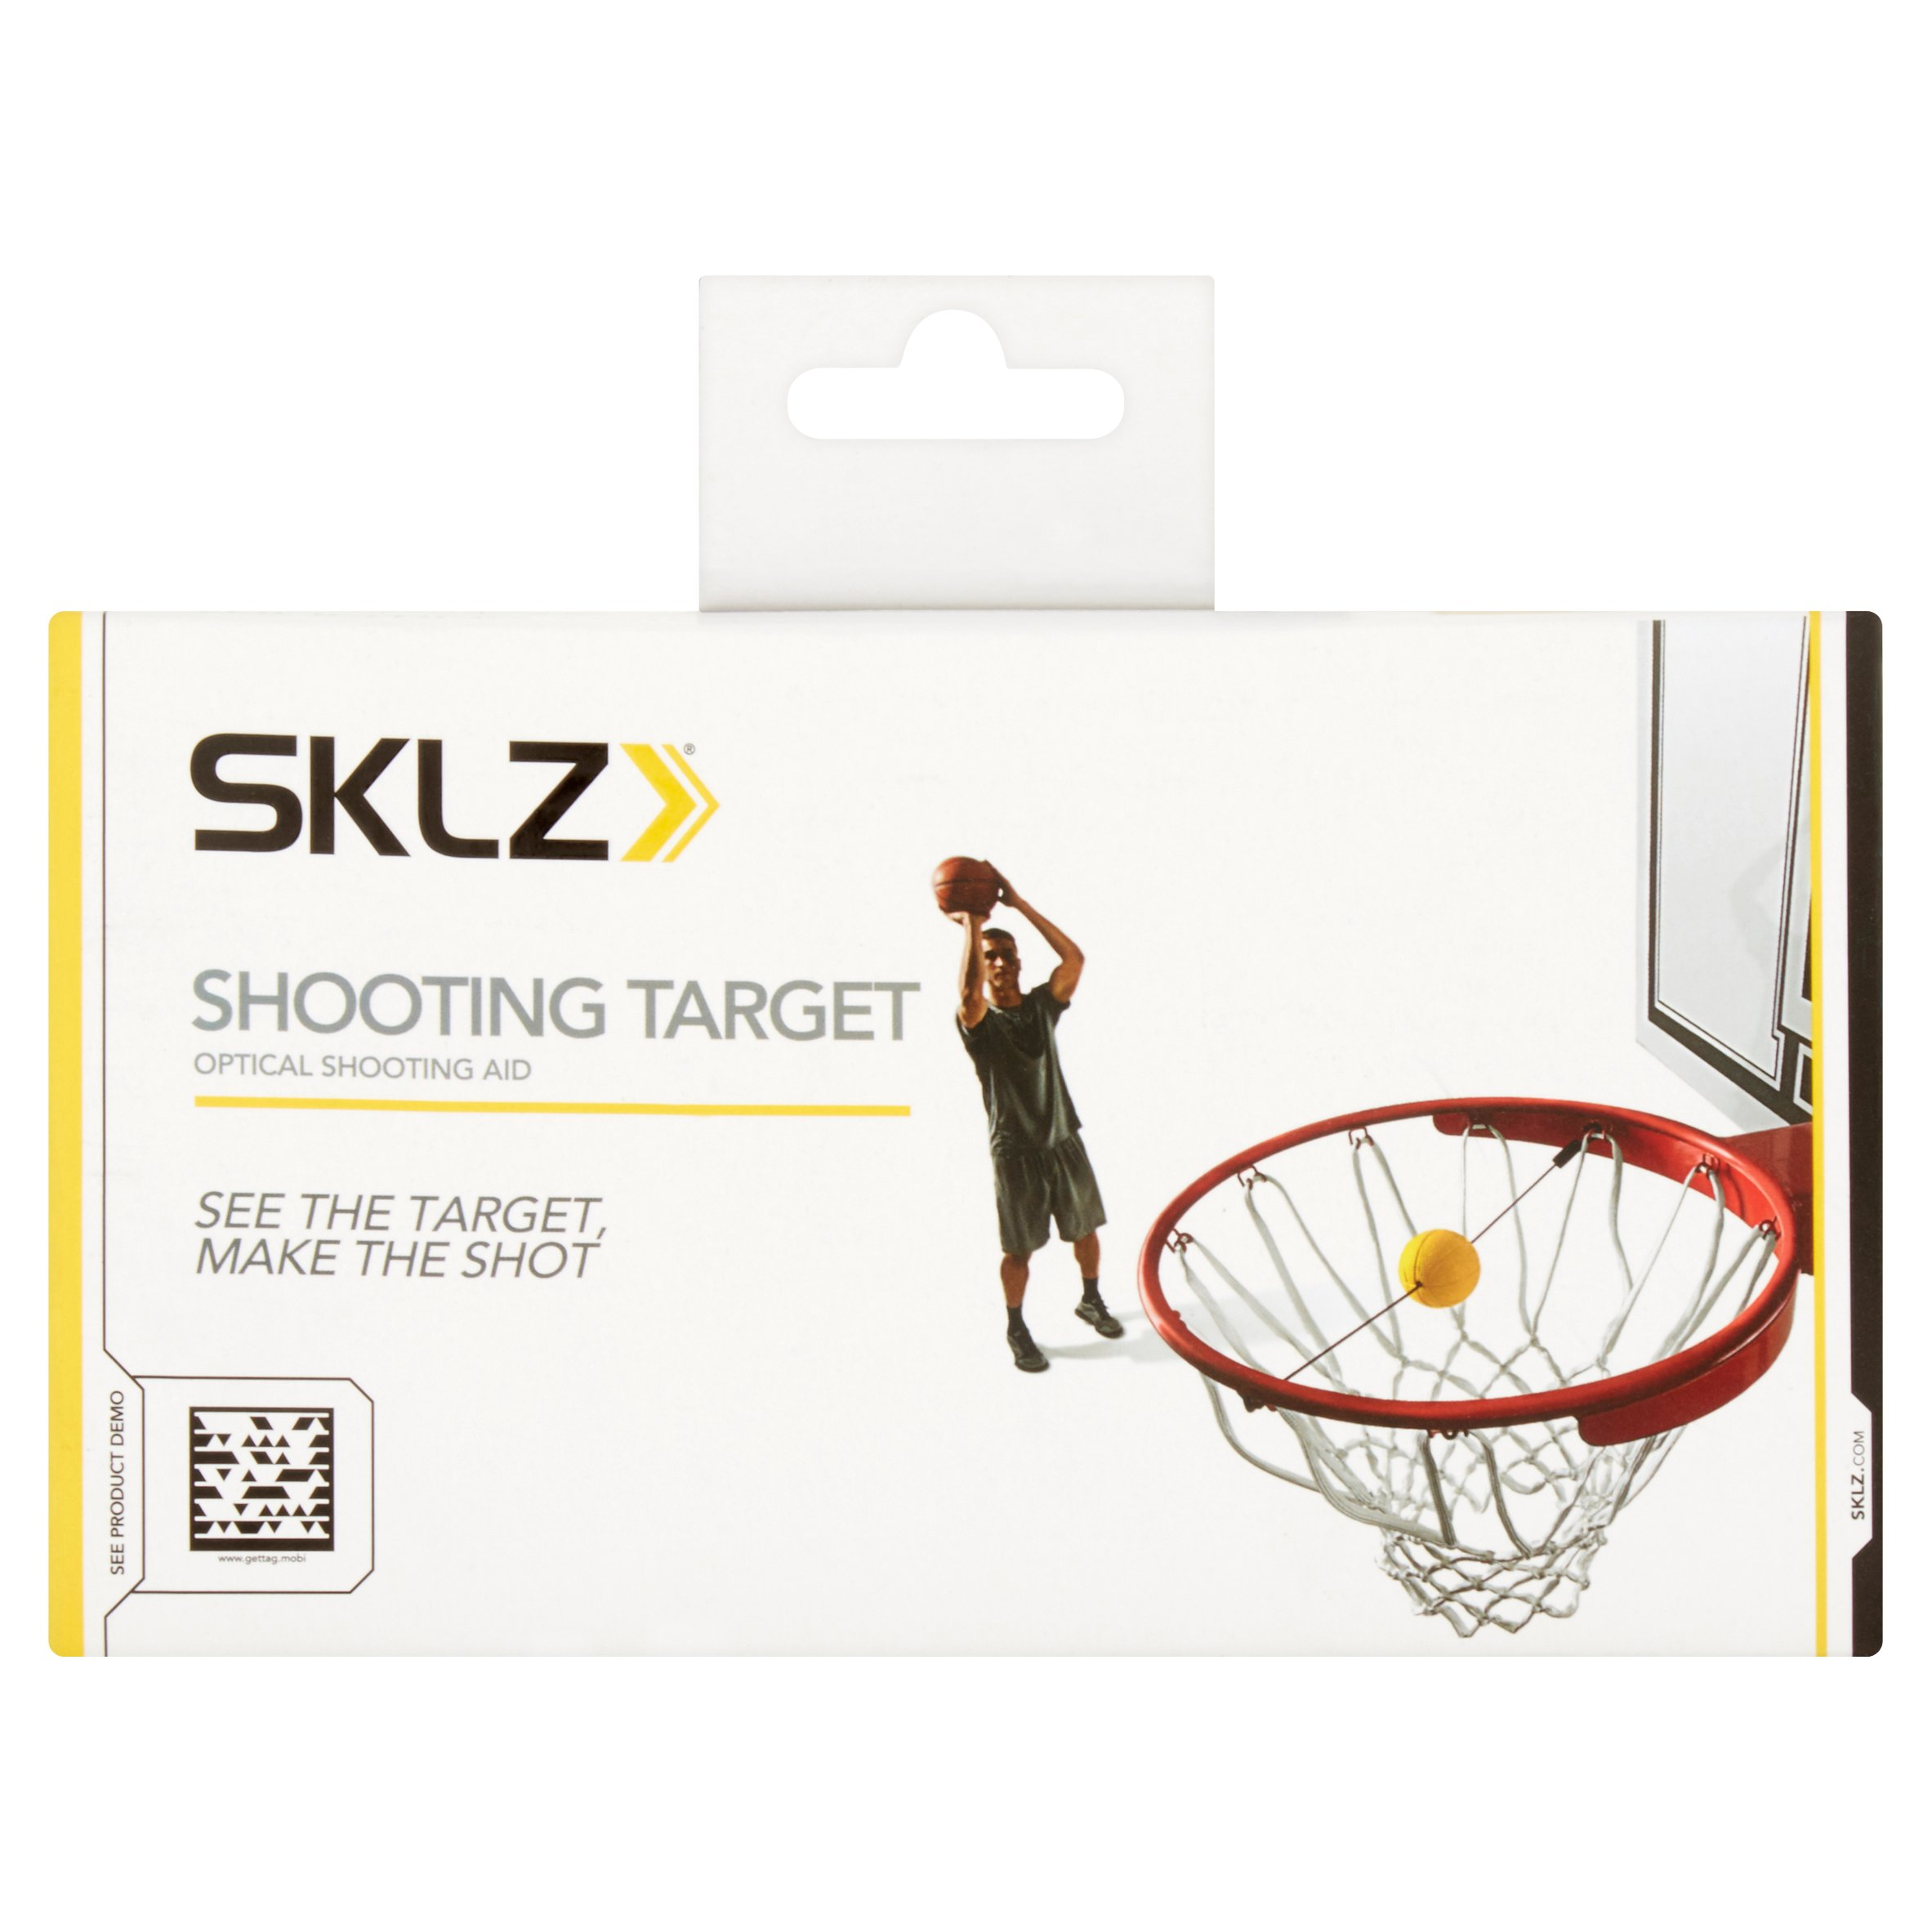 SKLZ Shooting Target Optical Shooting Aid